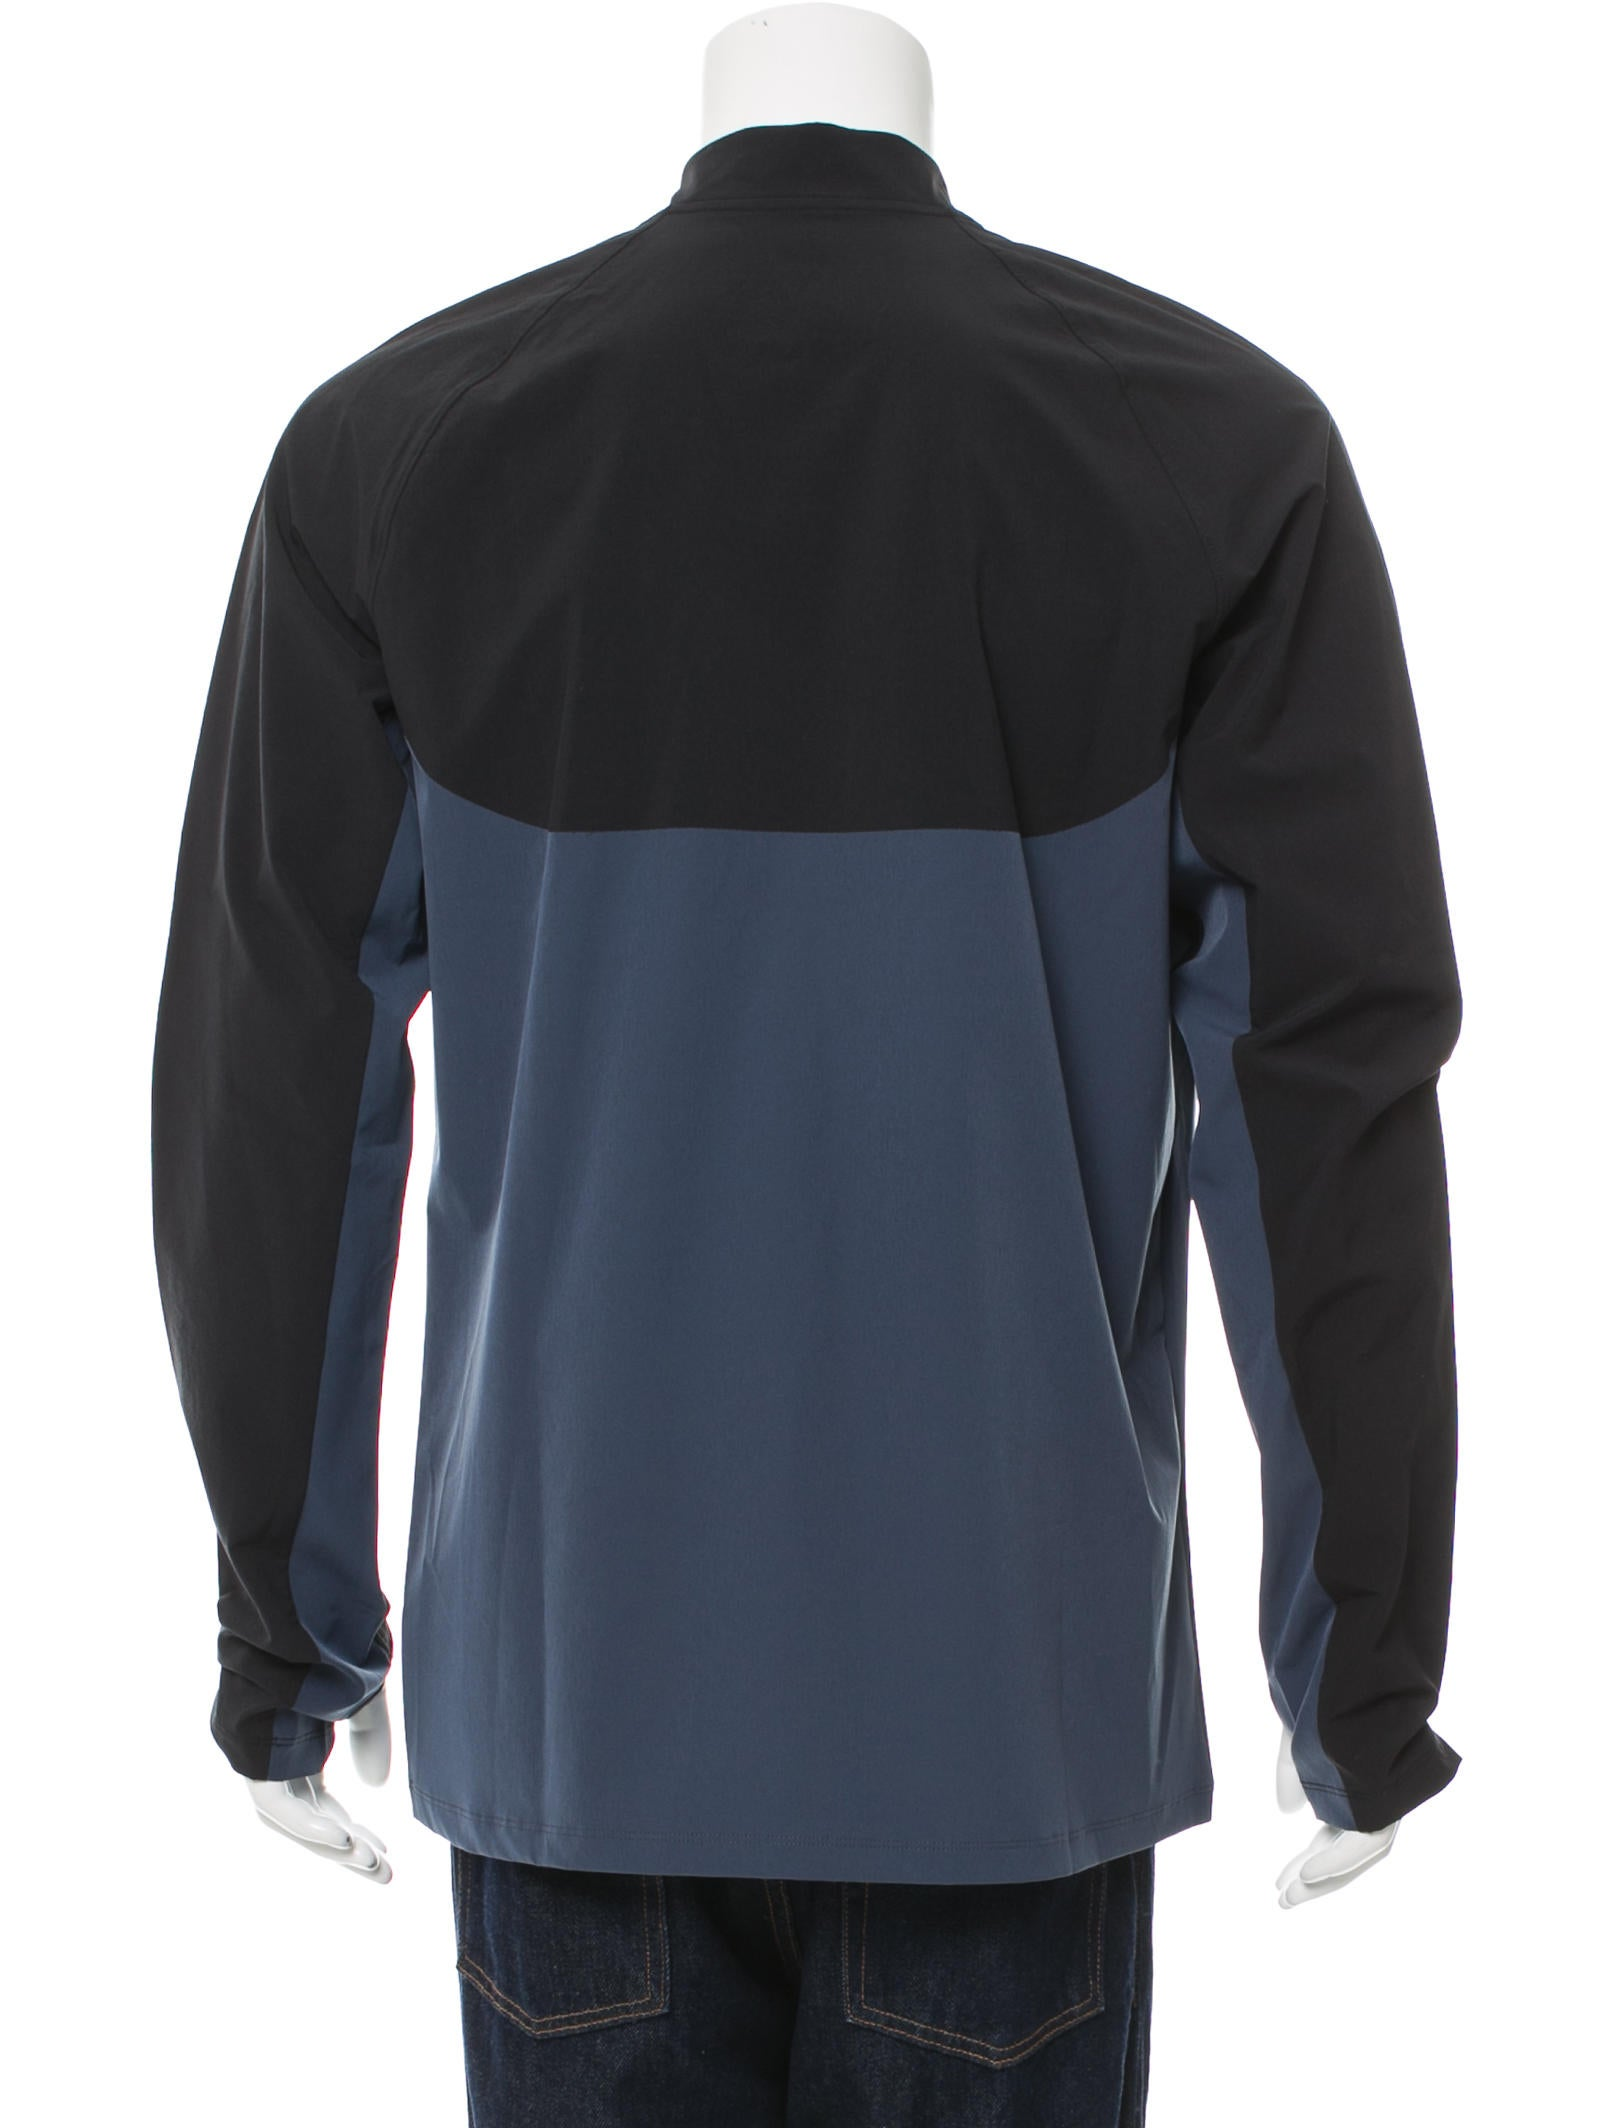 exceptional nike quarter zip outfits